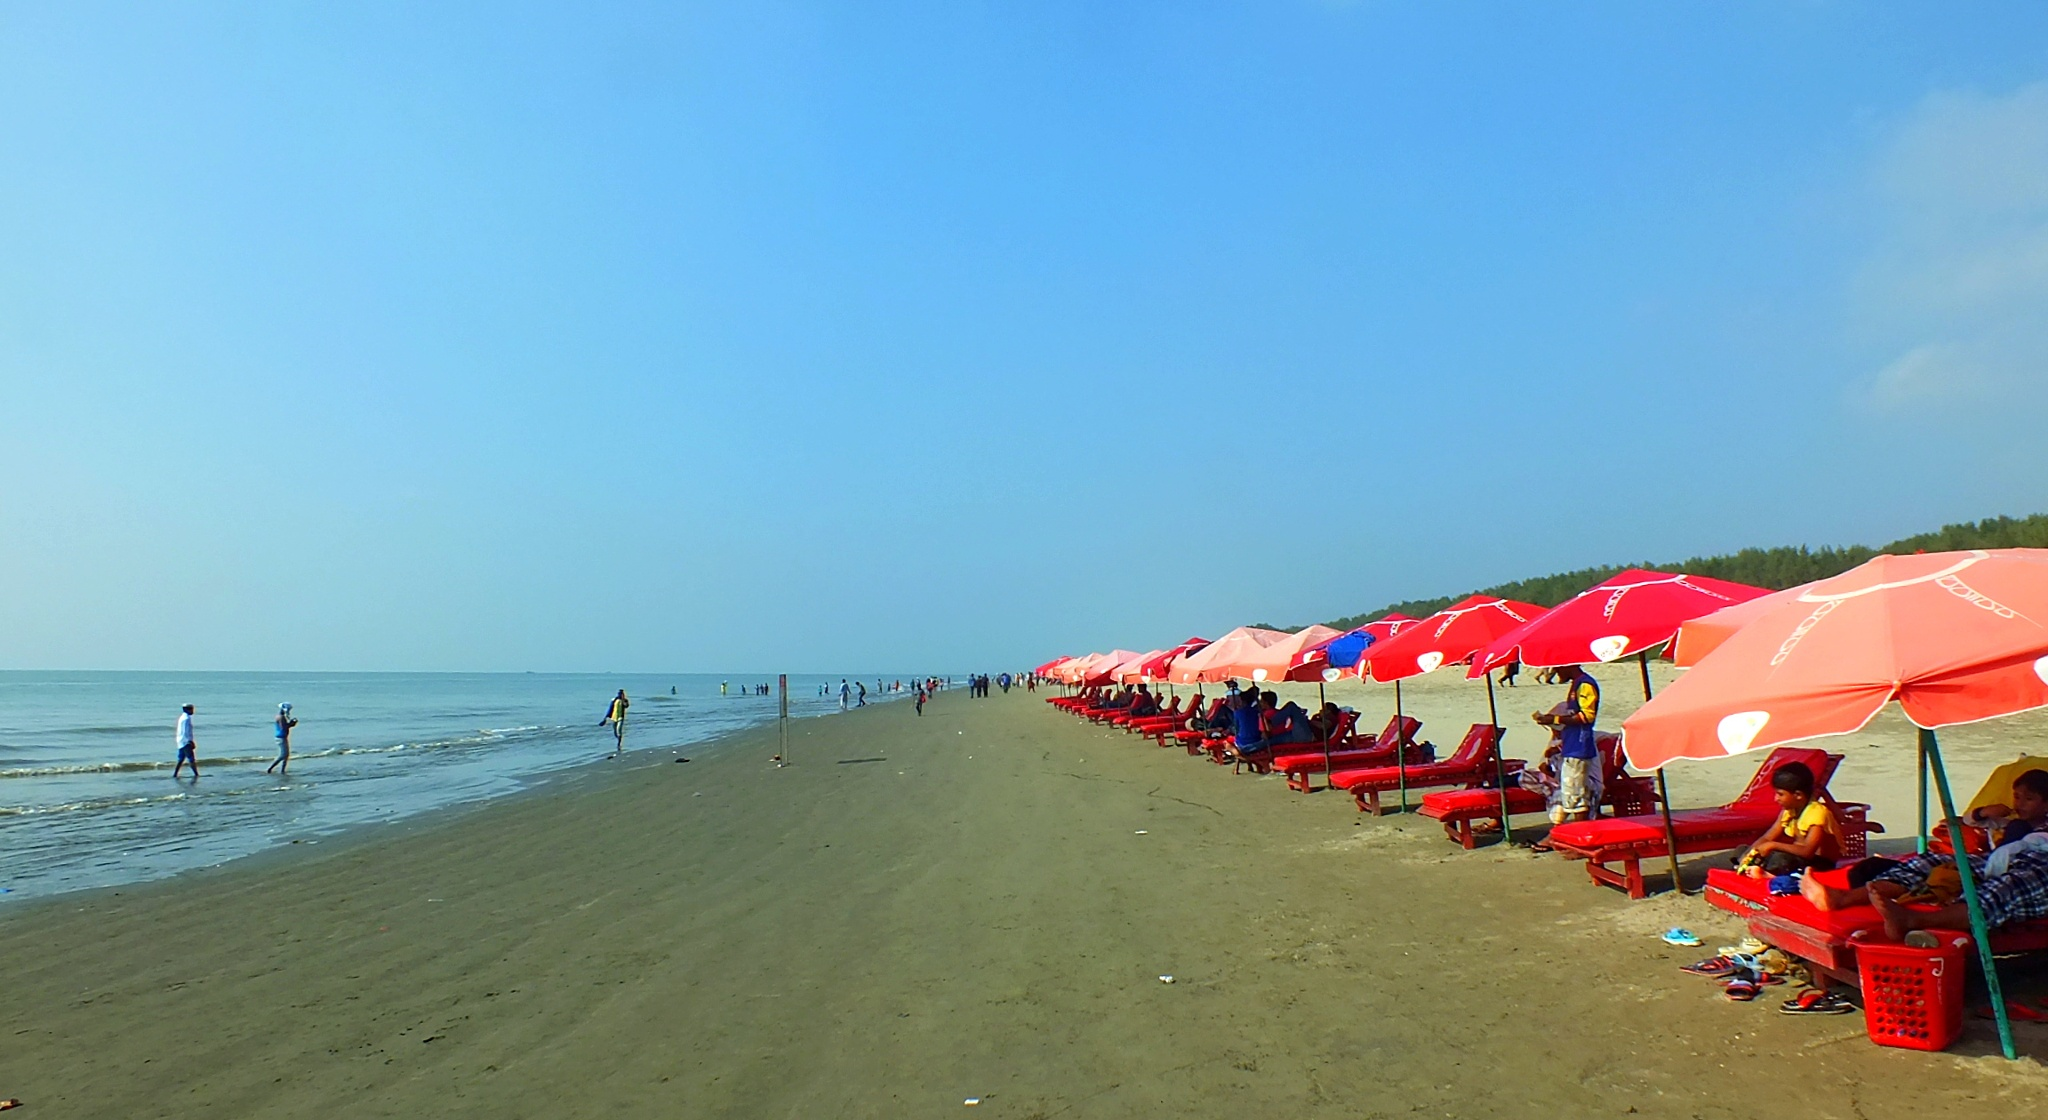 "The largest sea beach In the World ""Cox's Bazar, Bangladesh"" by Leakot"